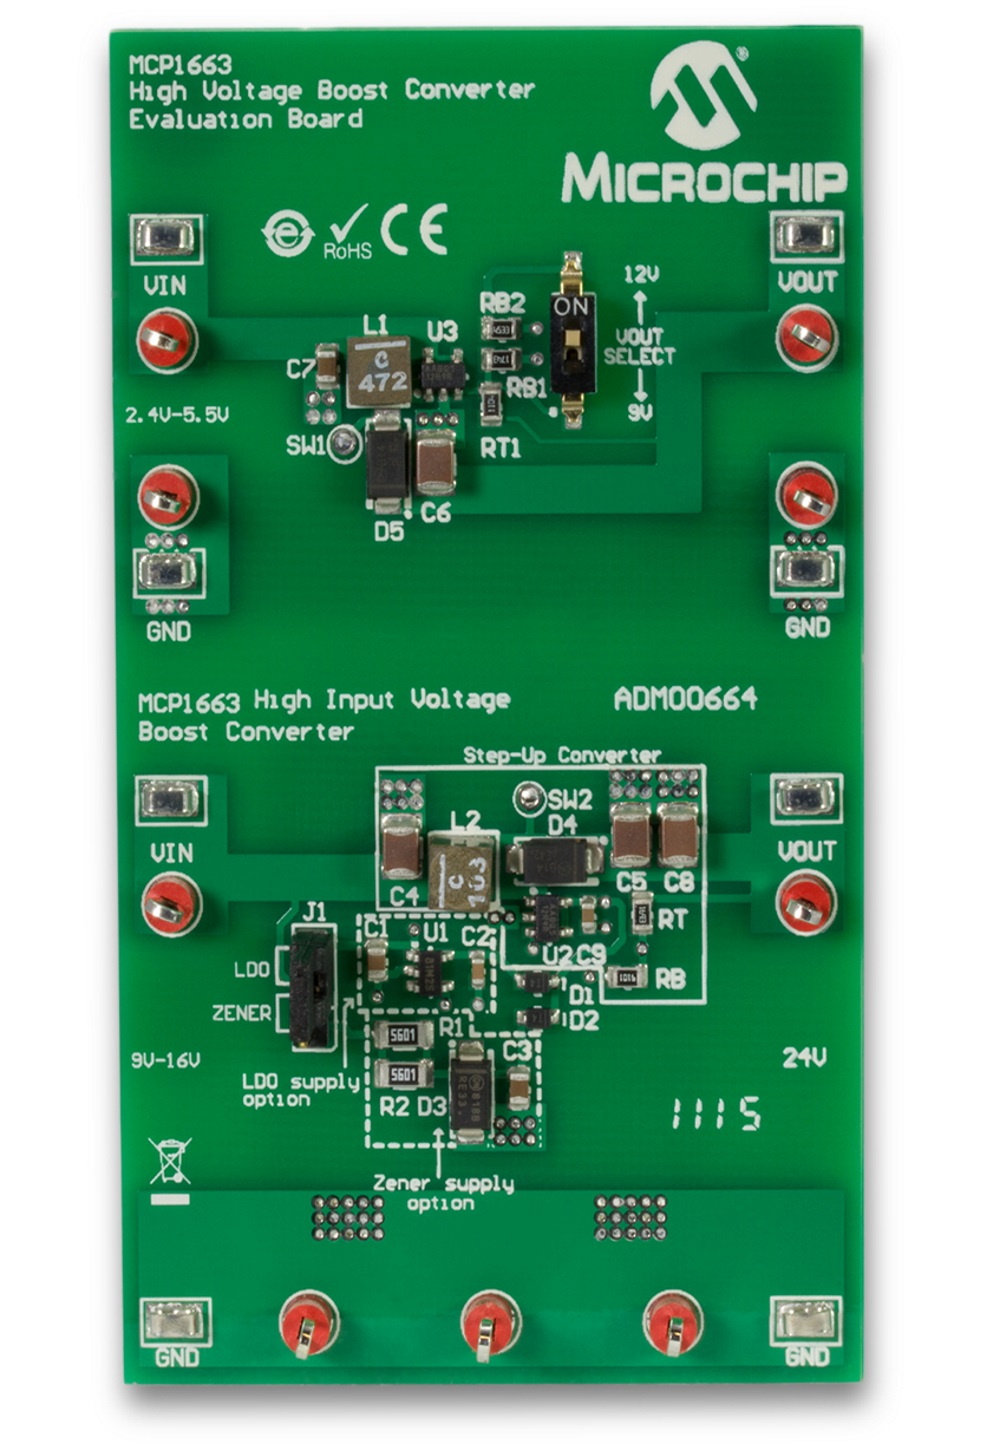 Development Tools Integrated Circut First Circuit Board Shortcircuit Protection For Sale This Comes With Two Distinct Applications The 1st Can Be Used To Evaluate